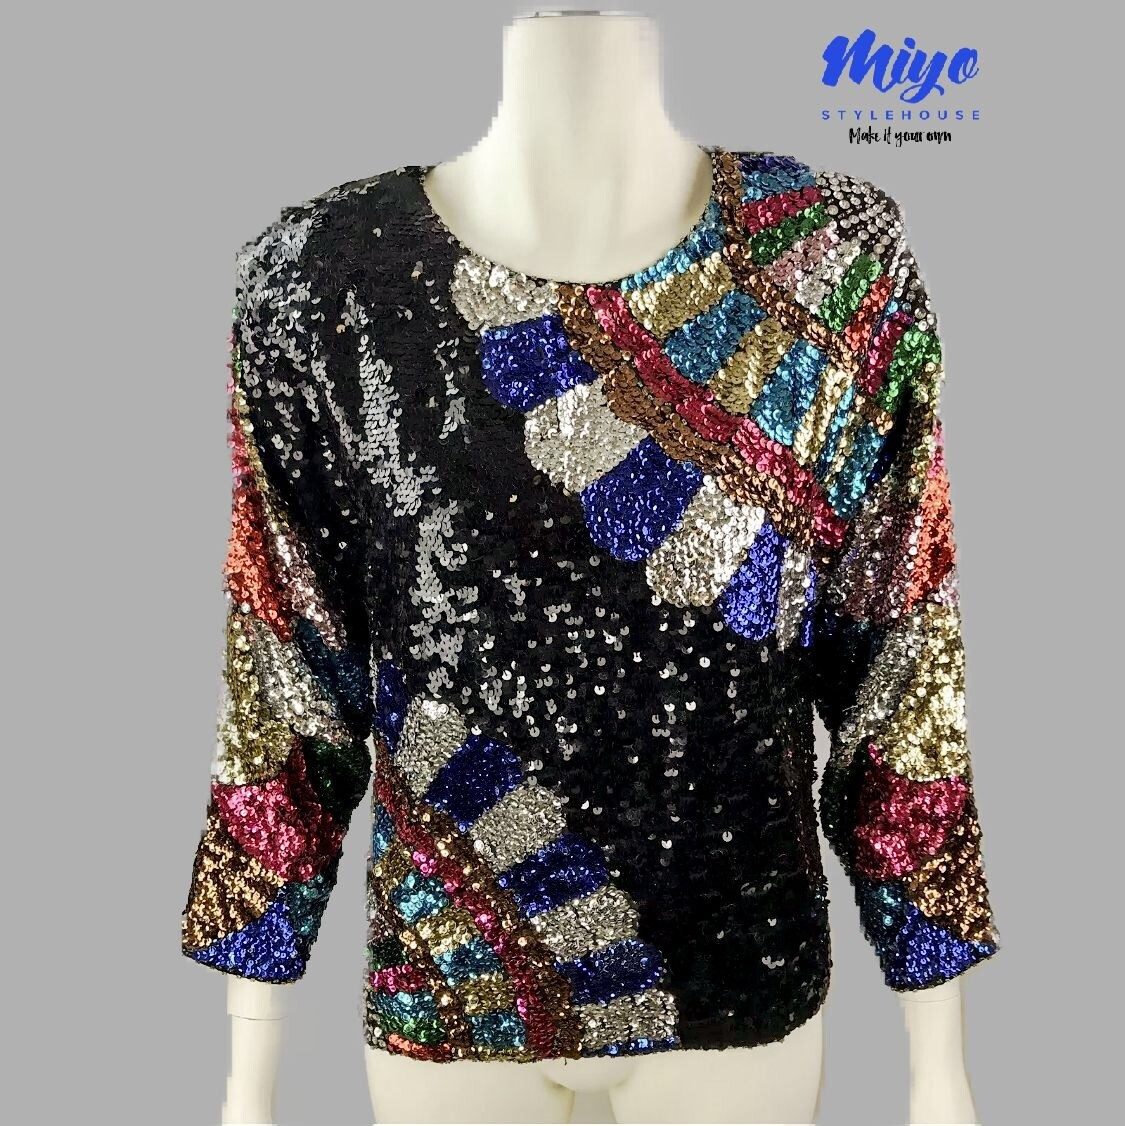 Sequin Glam Blouse - M/L